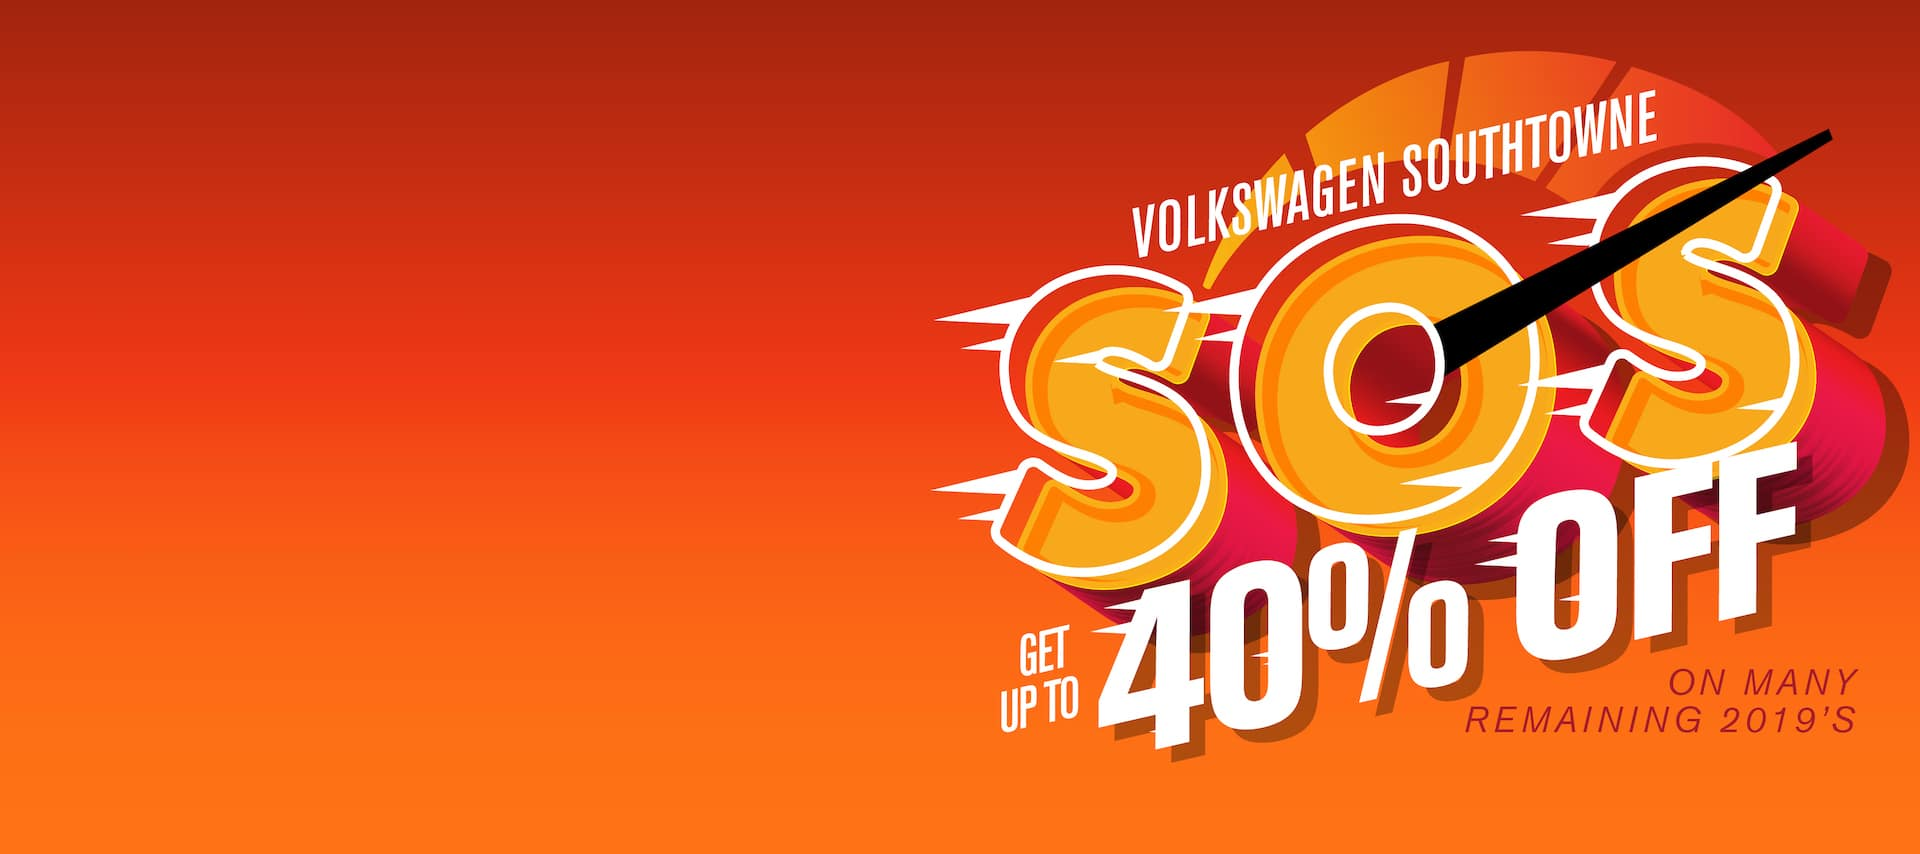 SOS Sale get up to 40% off many remaining 2019's